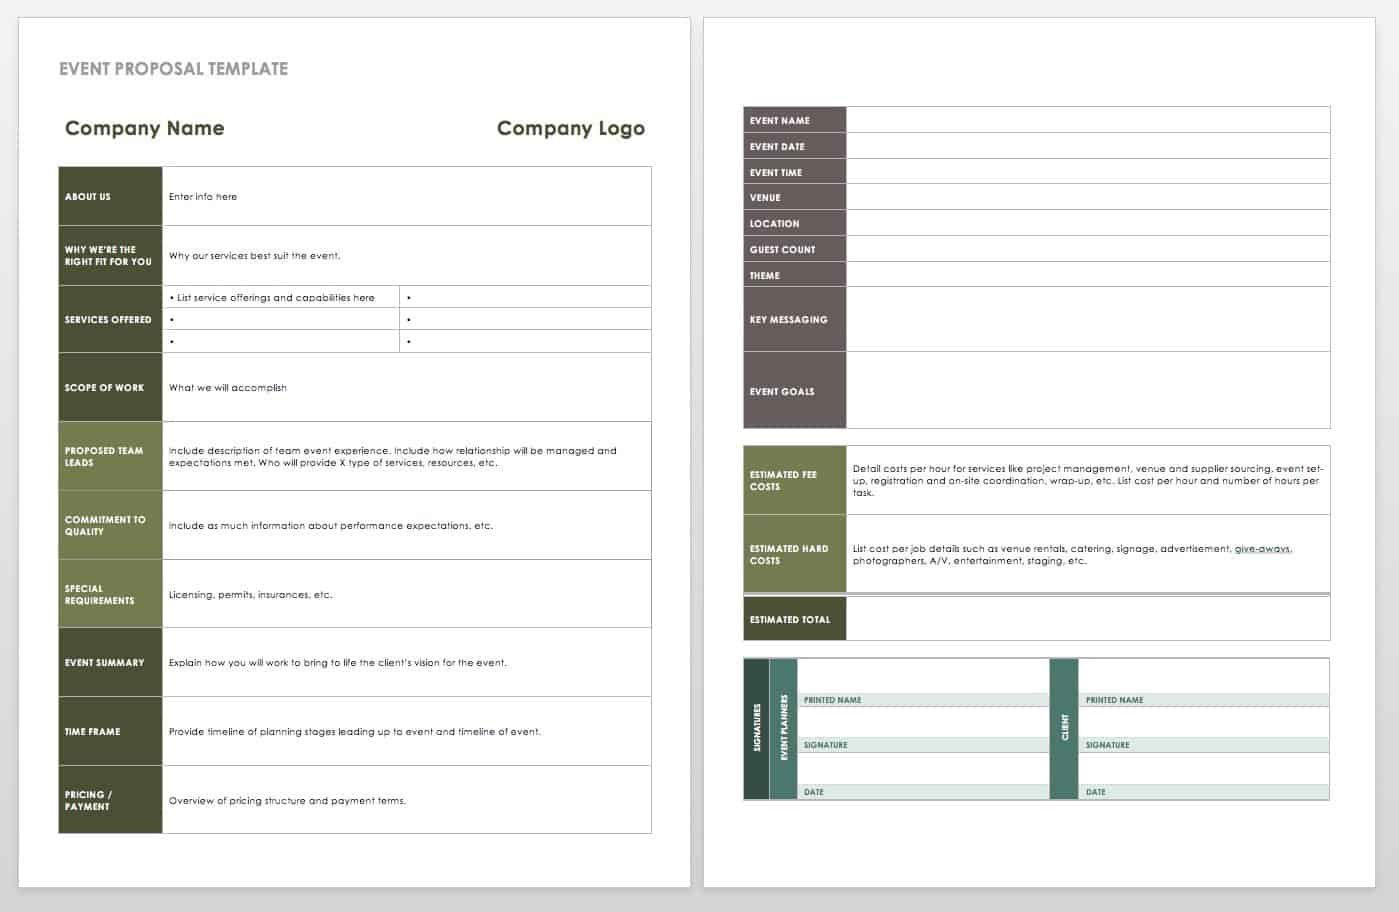 006 Imposing Free Event Planner Checklist Template High Definition  Planning PartyFull